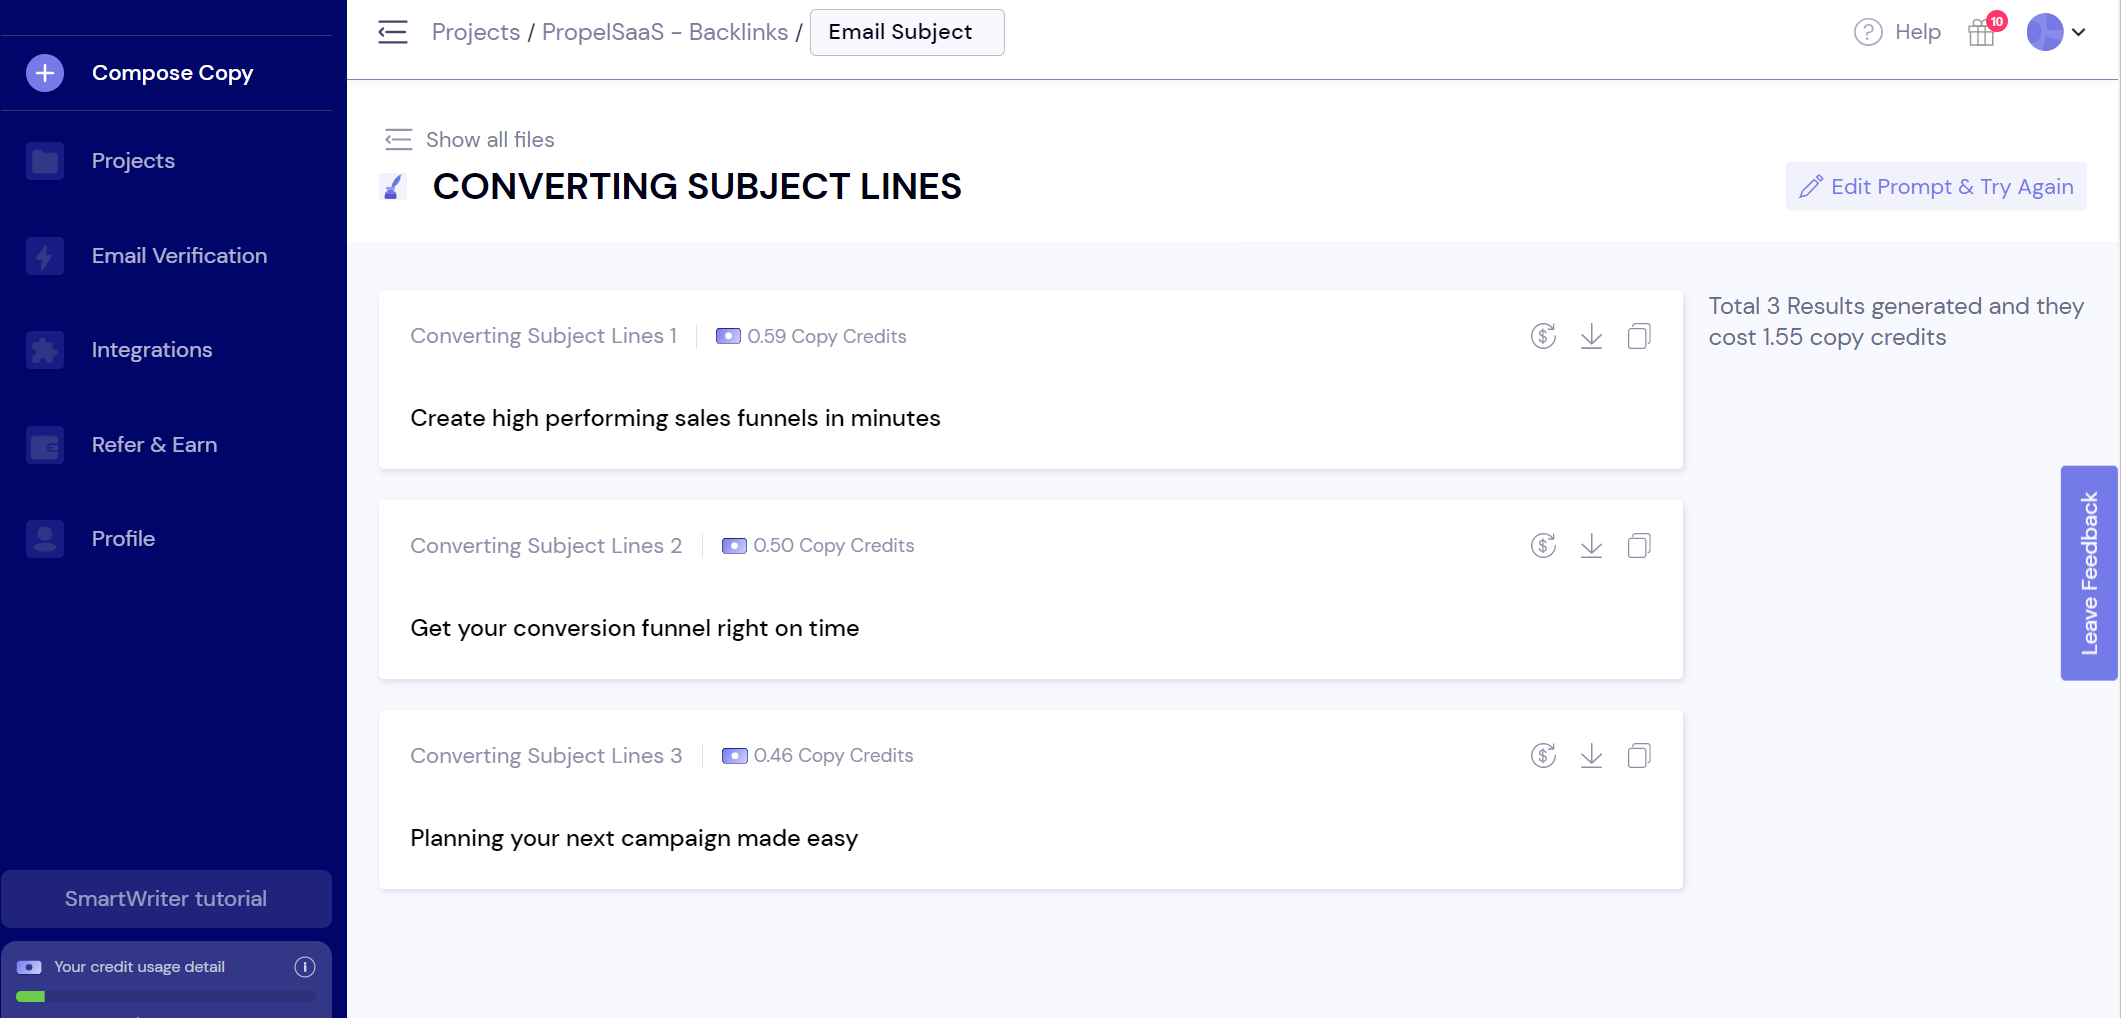 SmartWriter - Email Subject Lines Generated